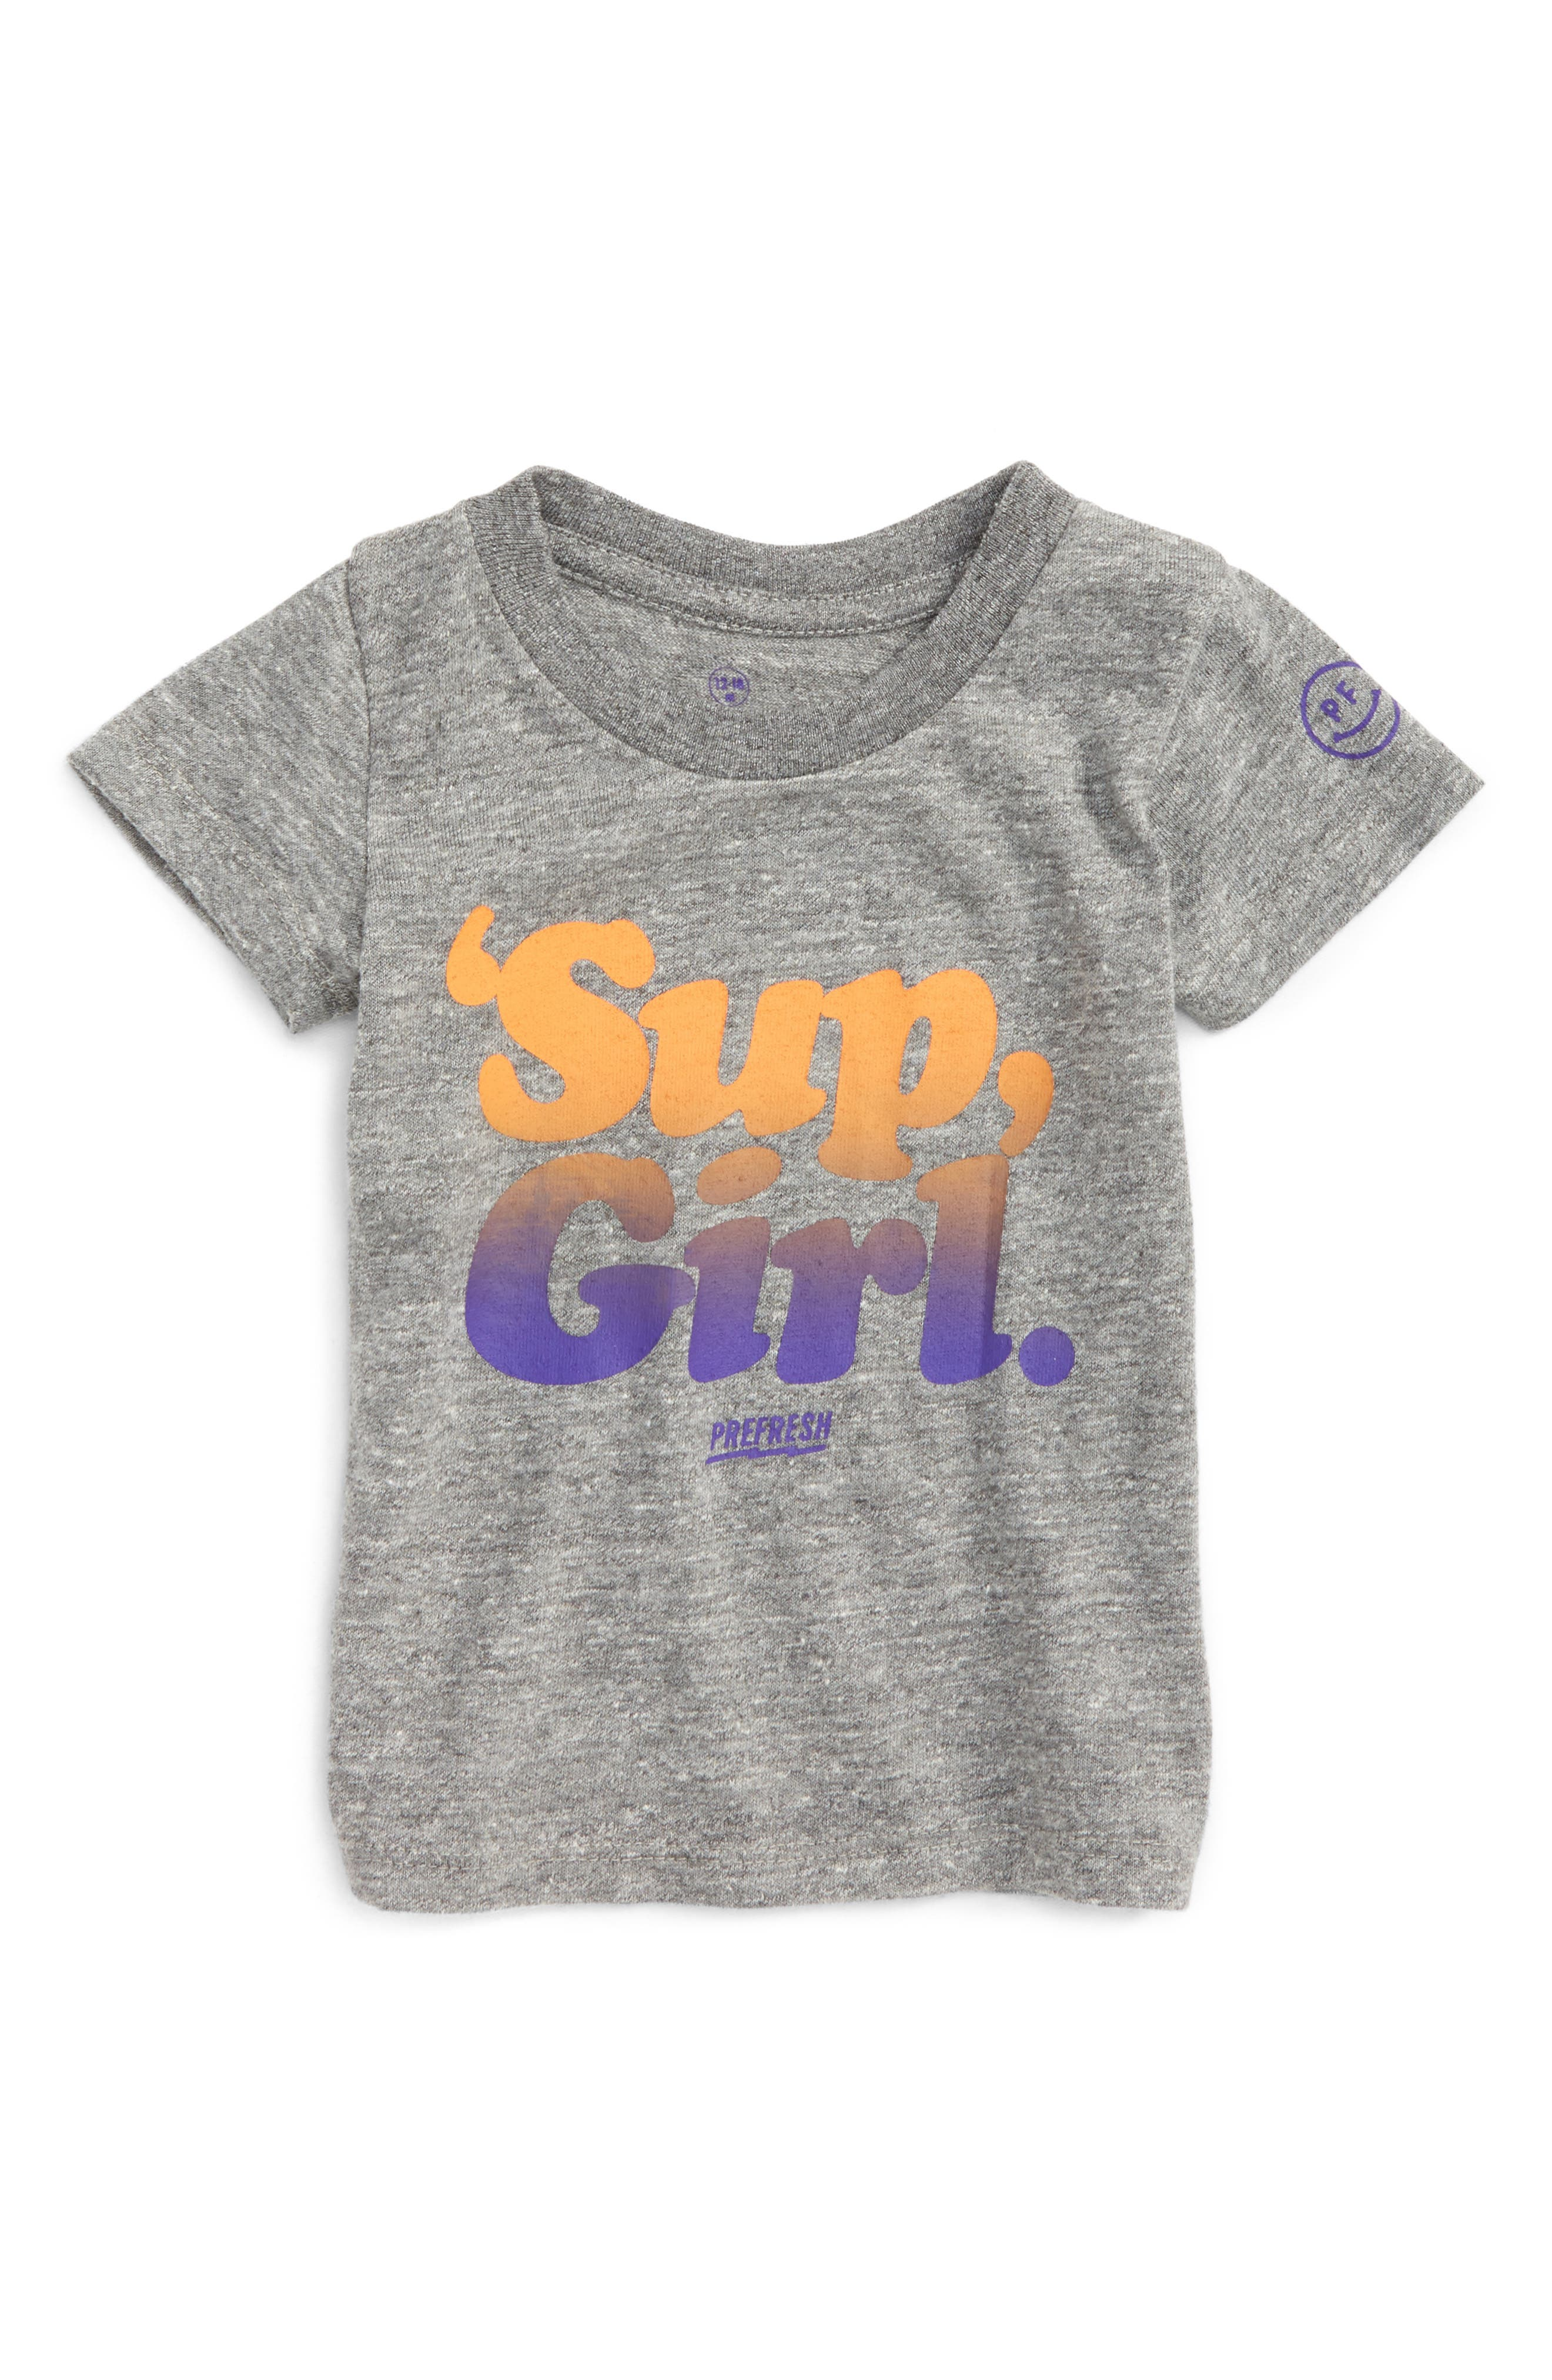 Alternate Image 1 Selected - Prefresh 'Sup, Girl Graphic T-Shirt (Baby Boys)